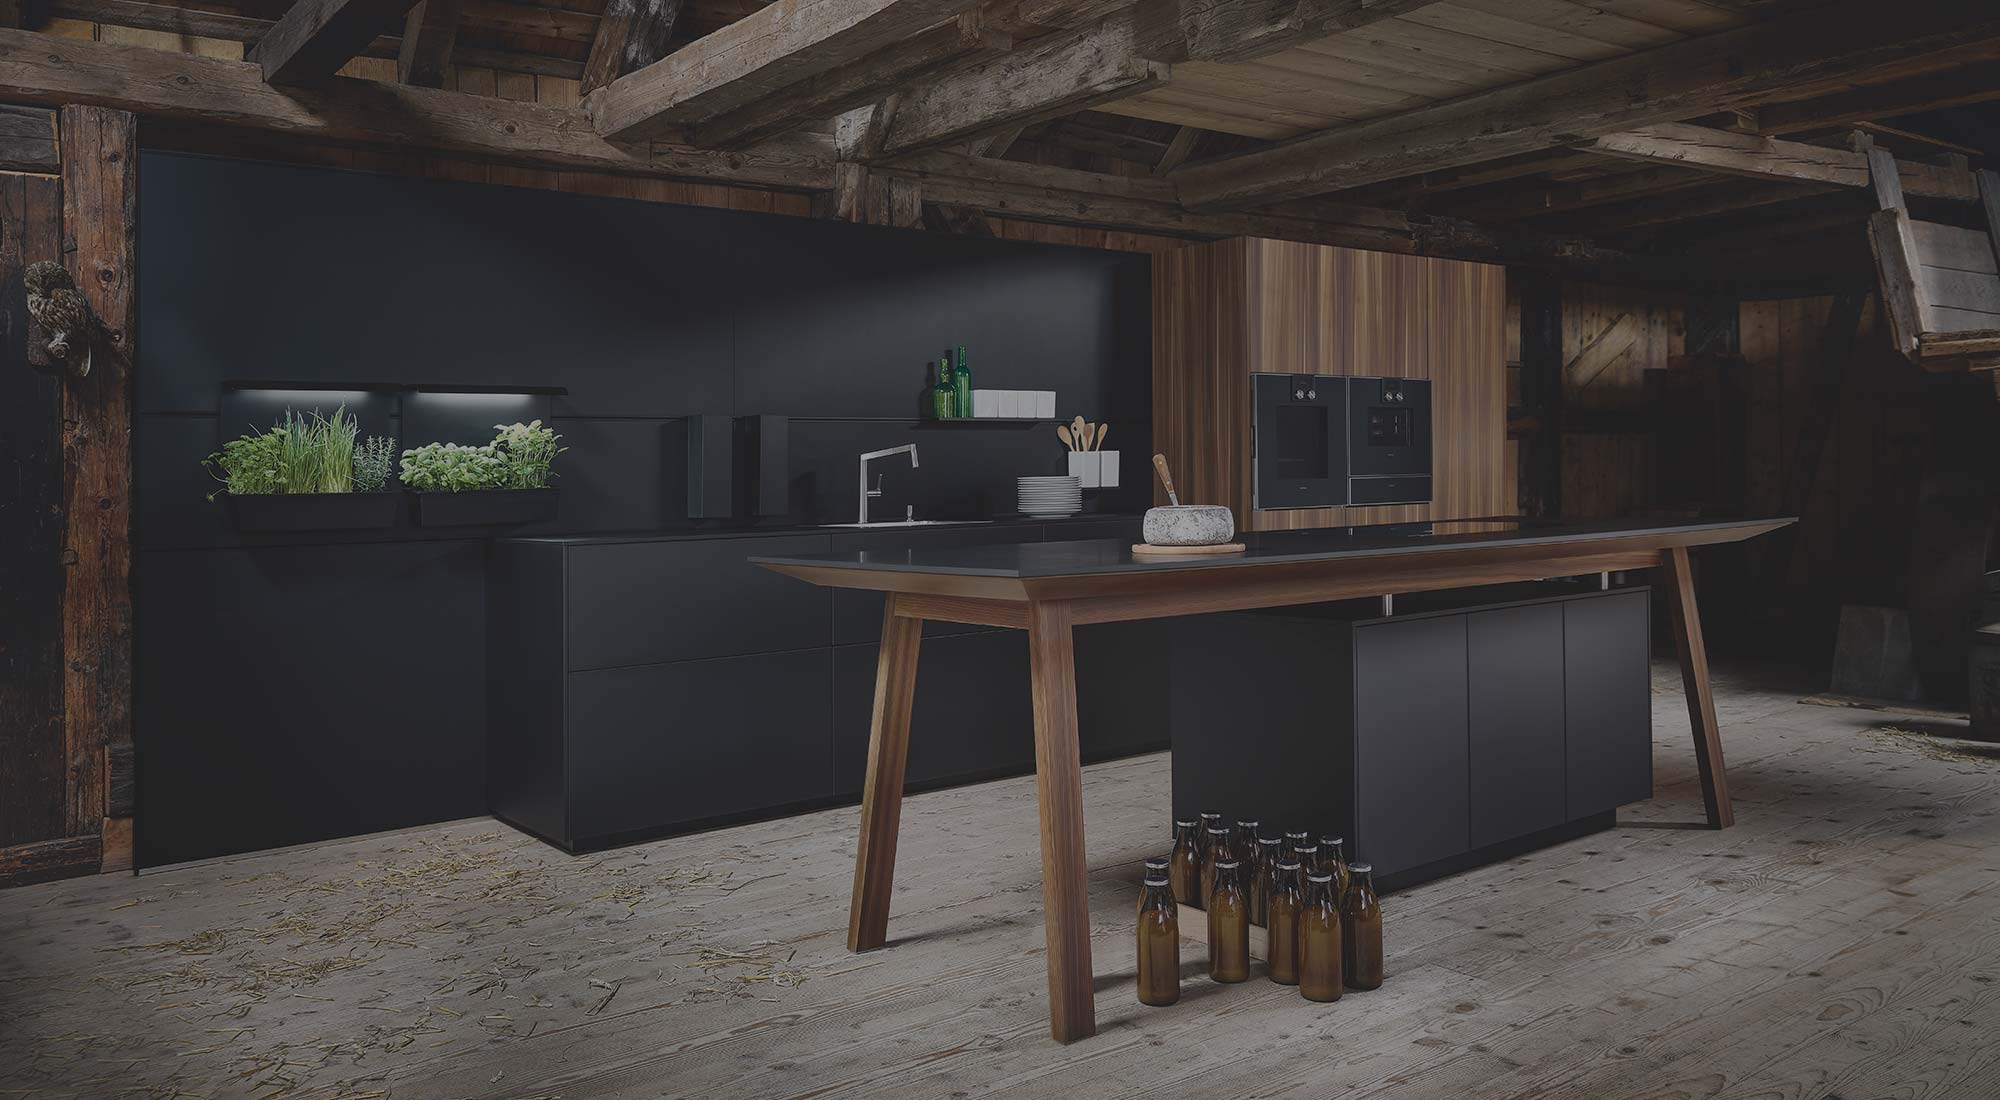 Black designer kitchen for modern lifestyle by Hubble